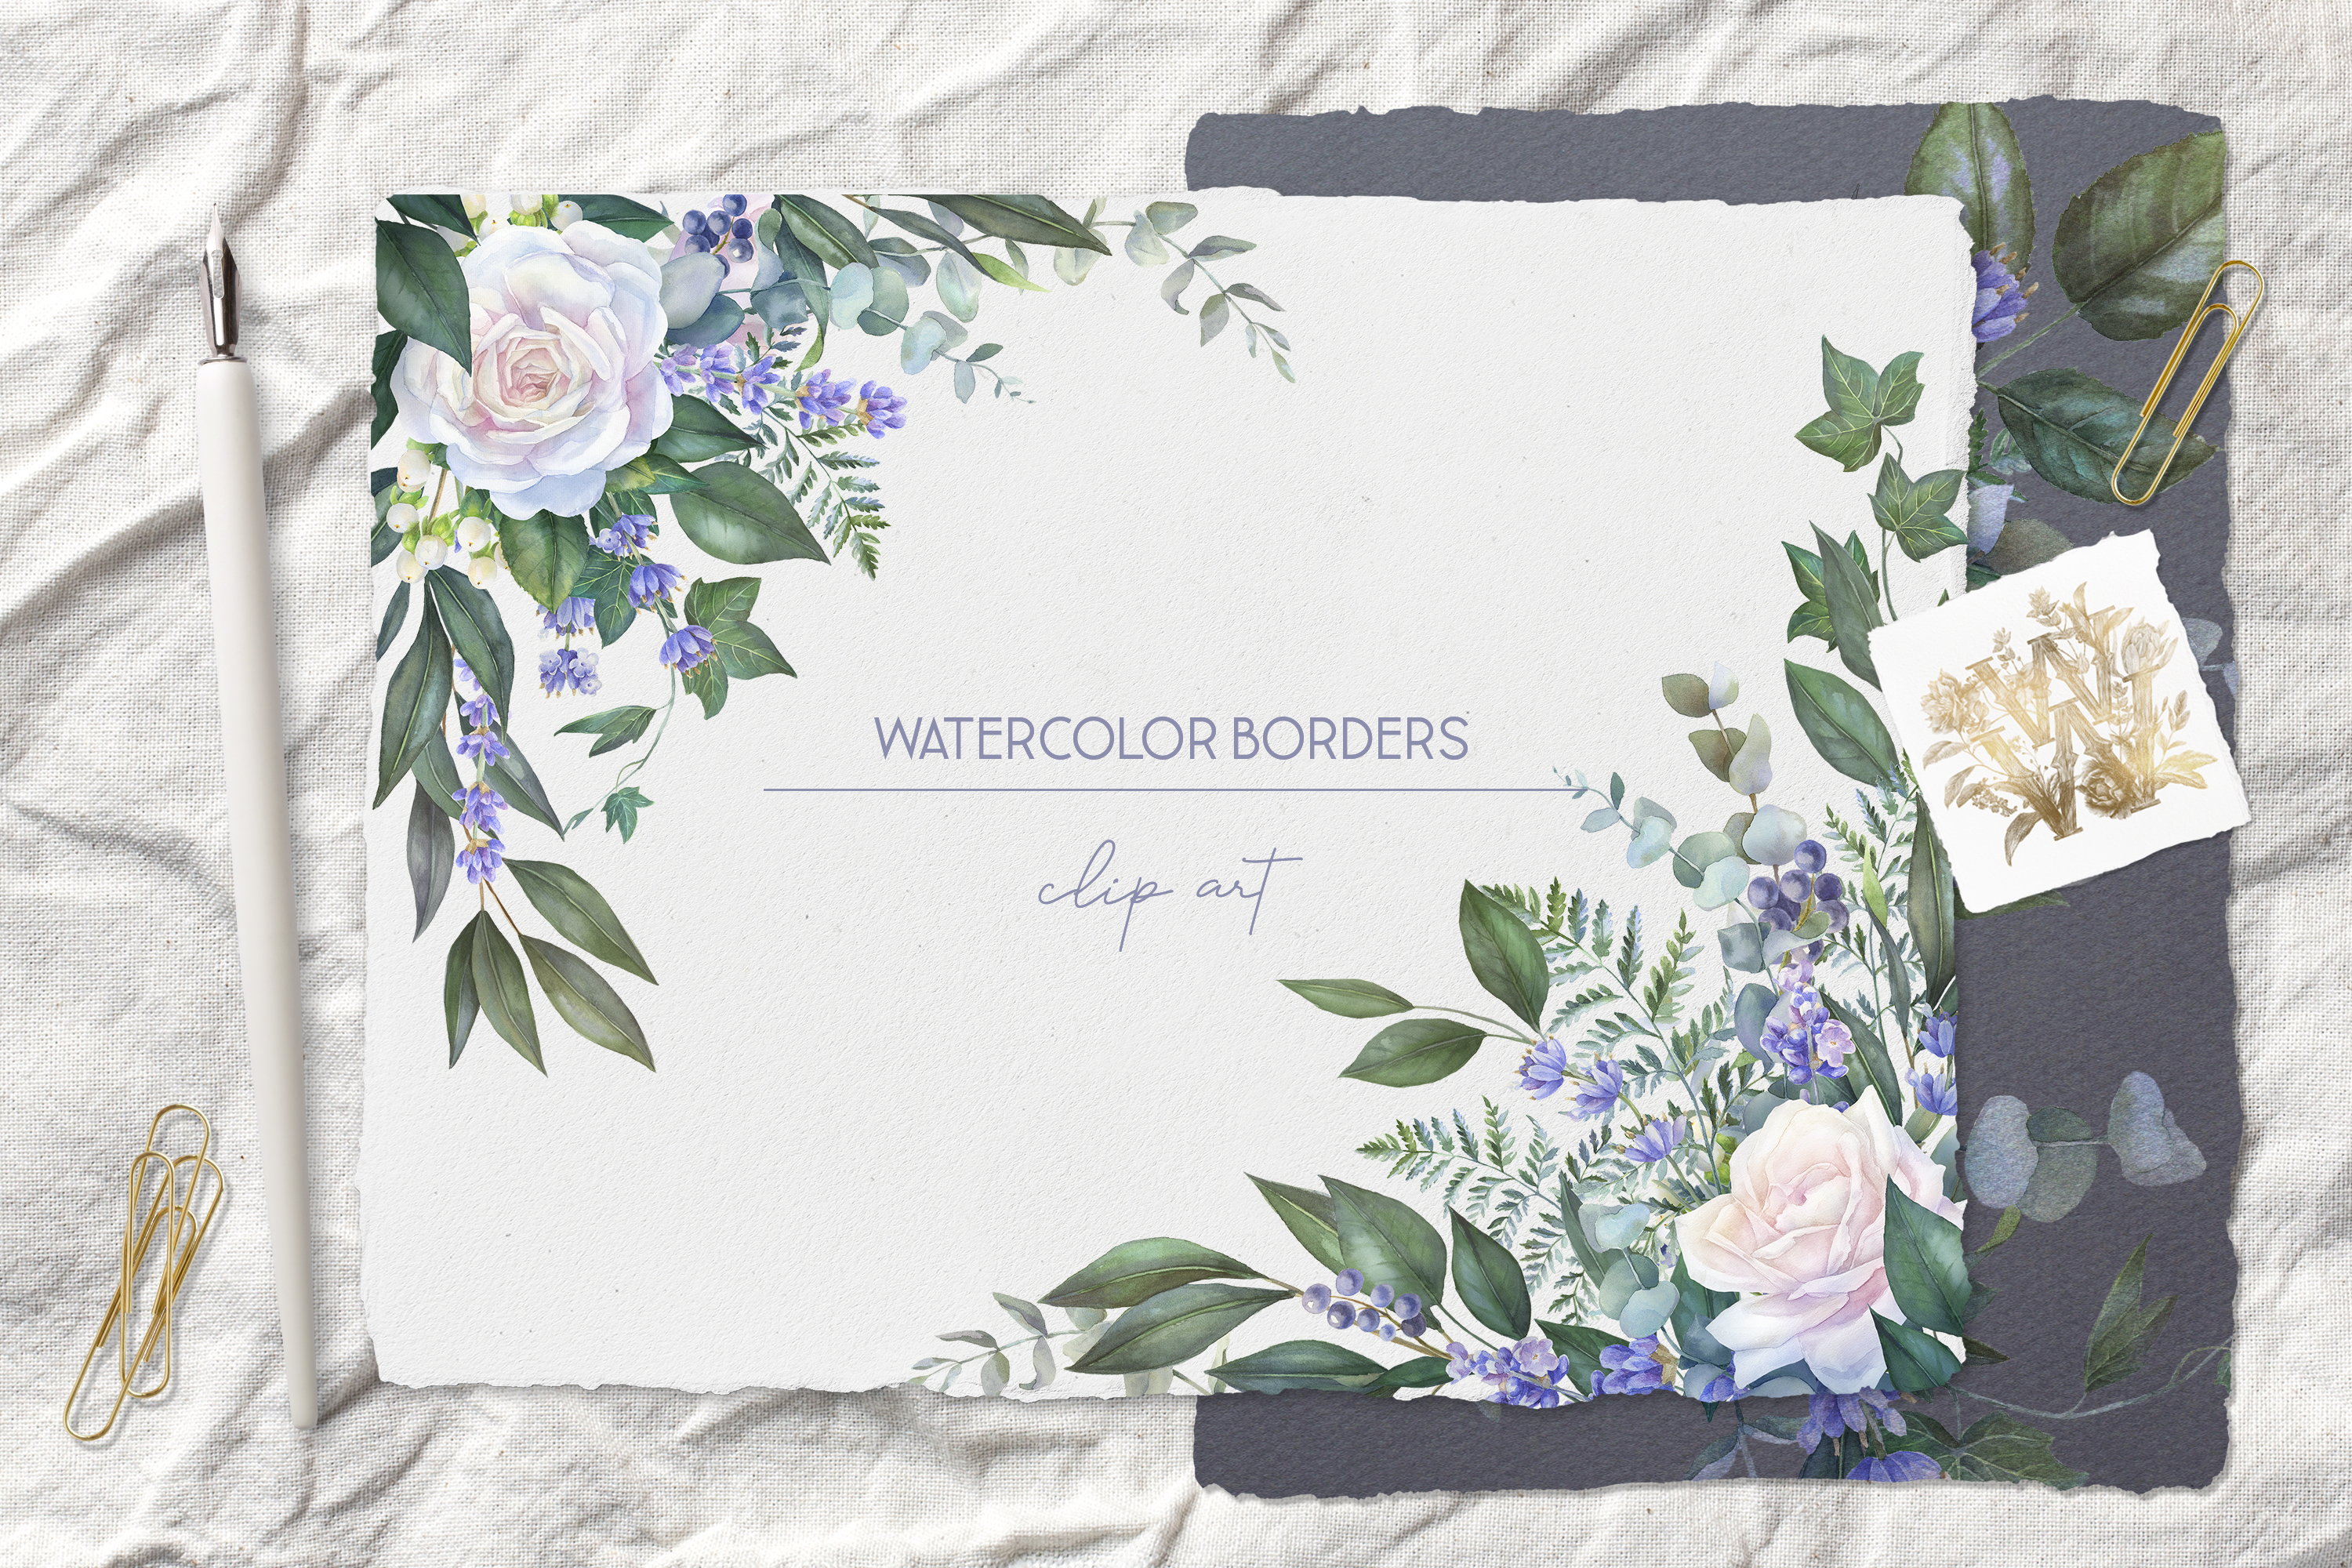 White rose border clip art, watercolor floral wedding frame example image 6